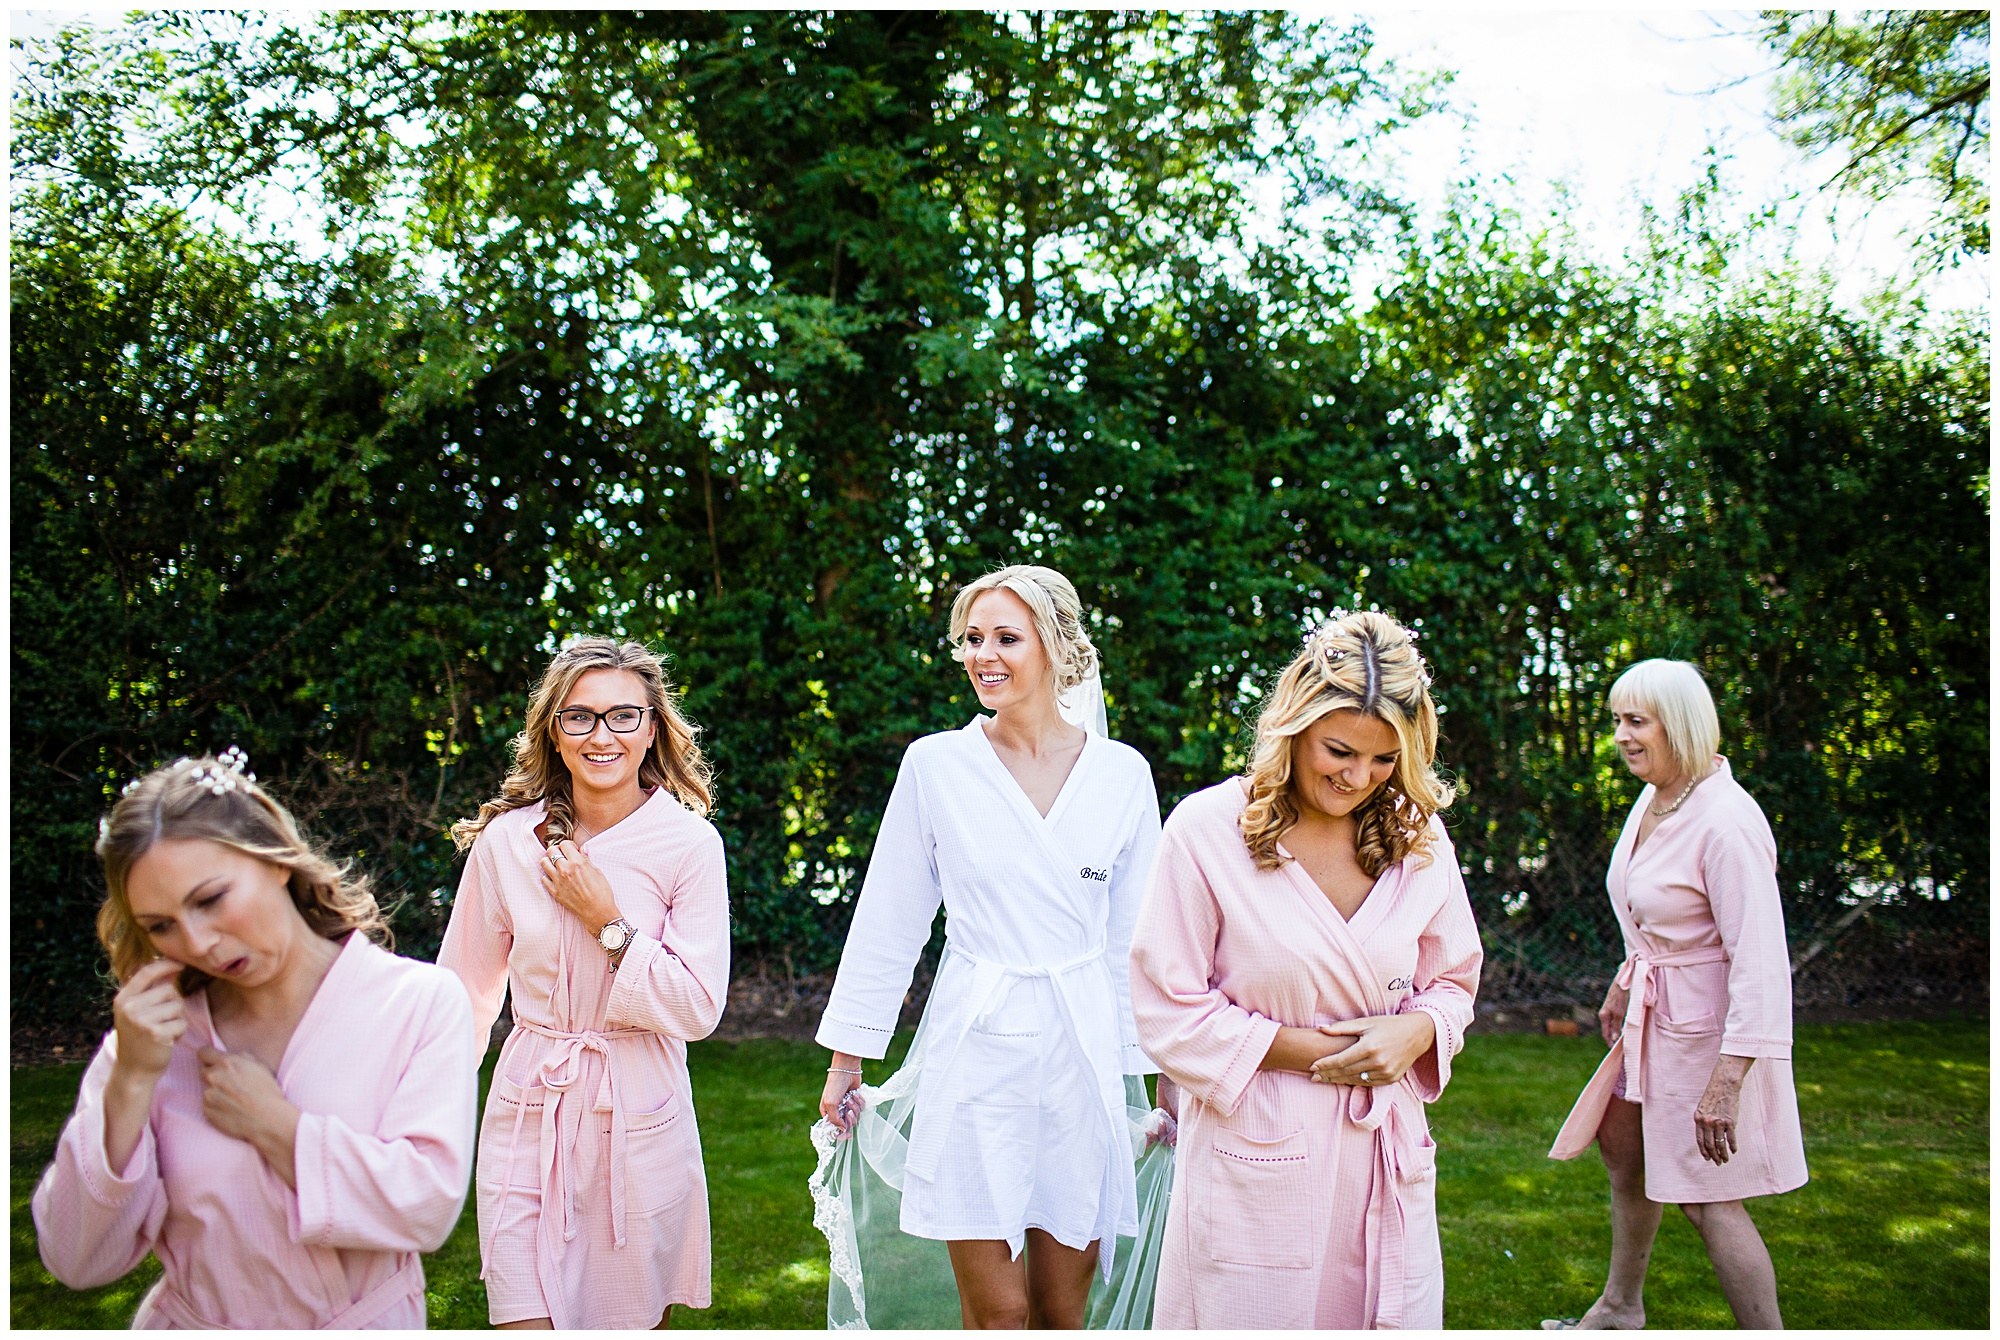 after the photo = everyone disperse, and the bride looking incredbley beautiful in the middle , lots of layering